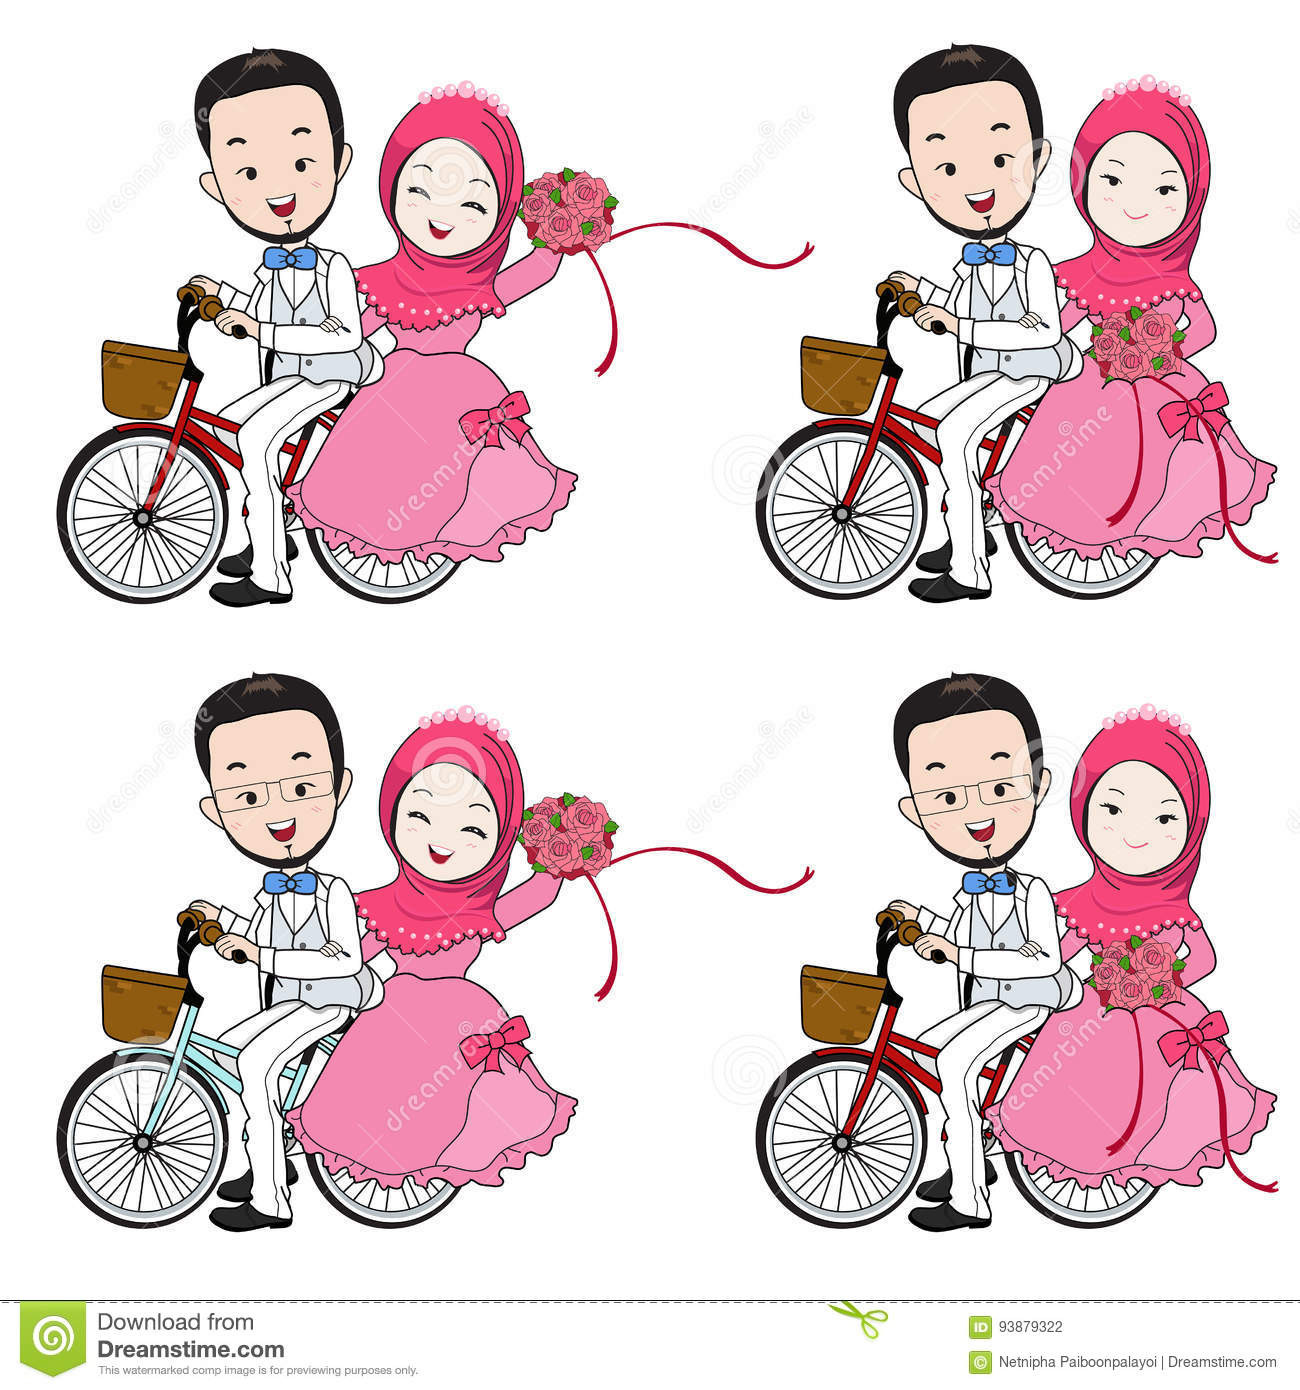 Muslim Wedding Cartoon Bride And Groom Riding Bicycle With Flow Stock Vector